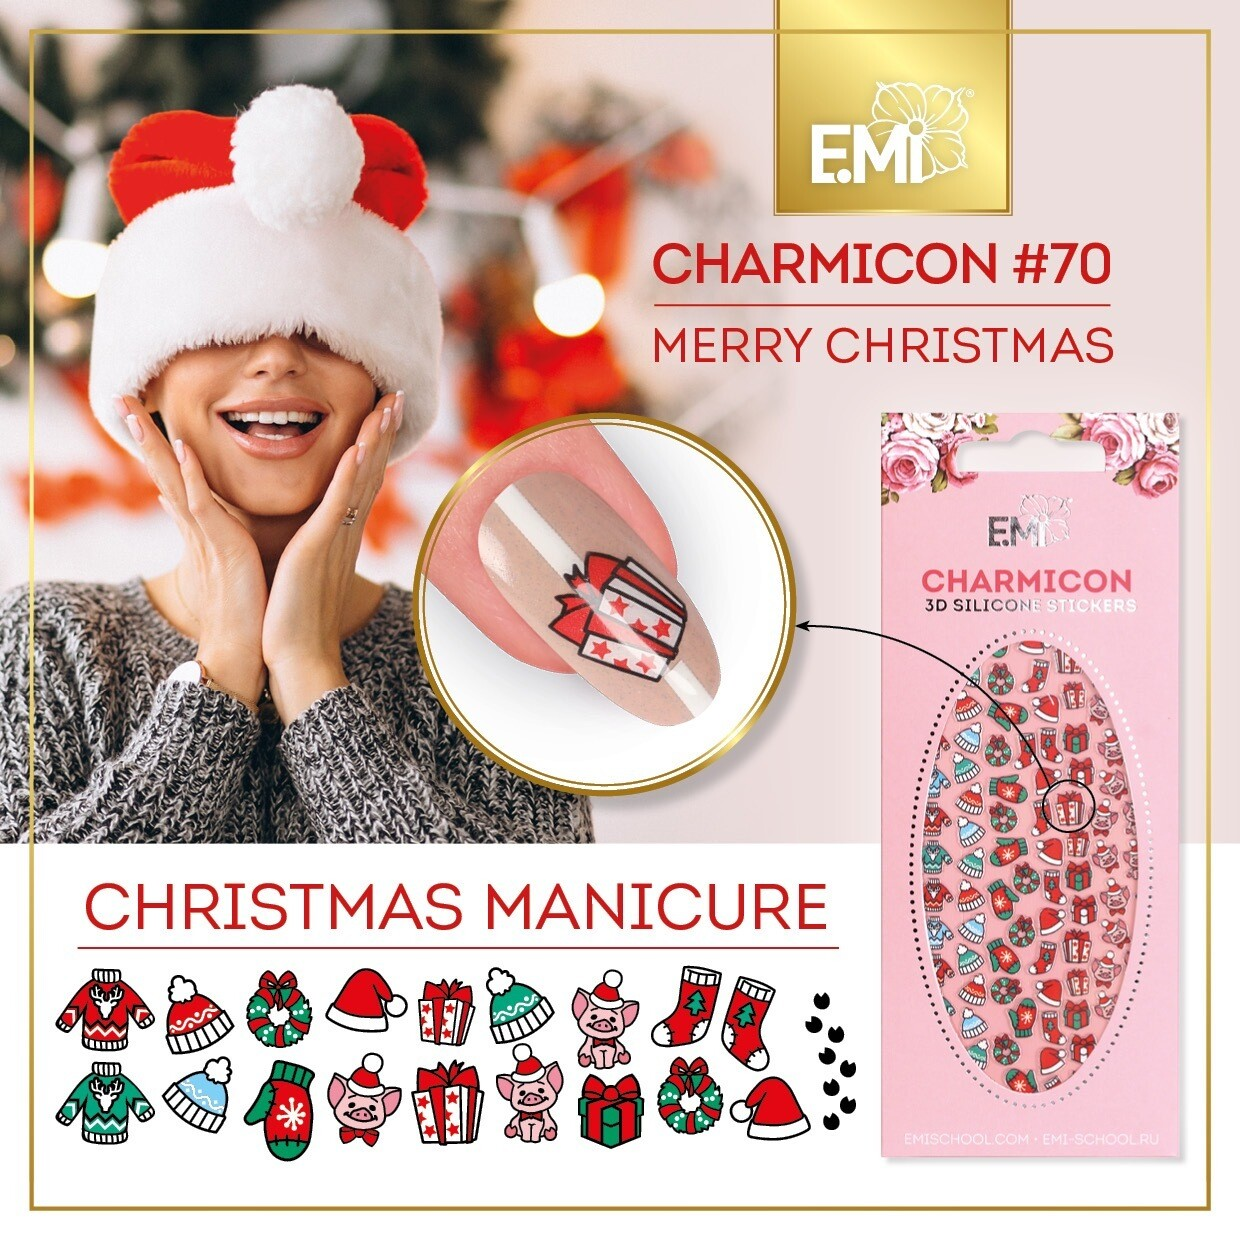 Charmicon Silicone Stickers #70 Merry Christmas